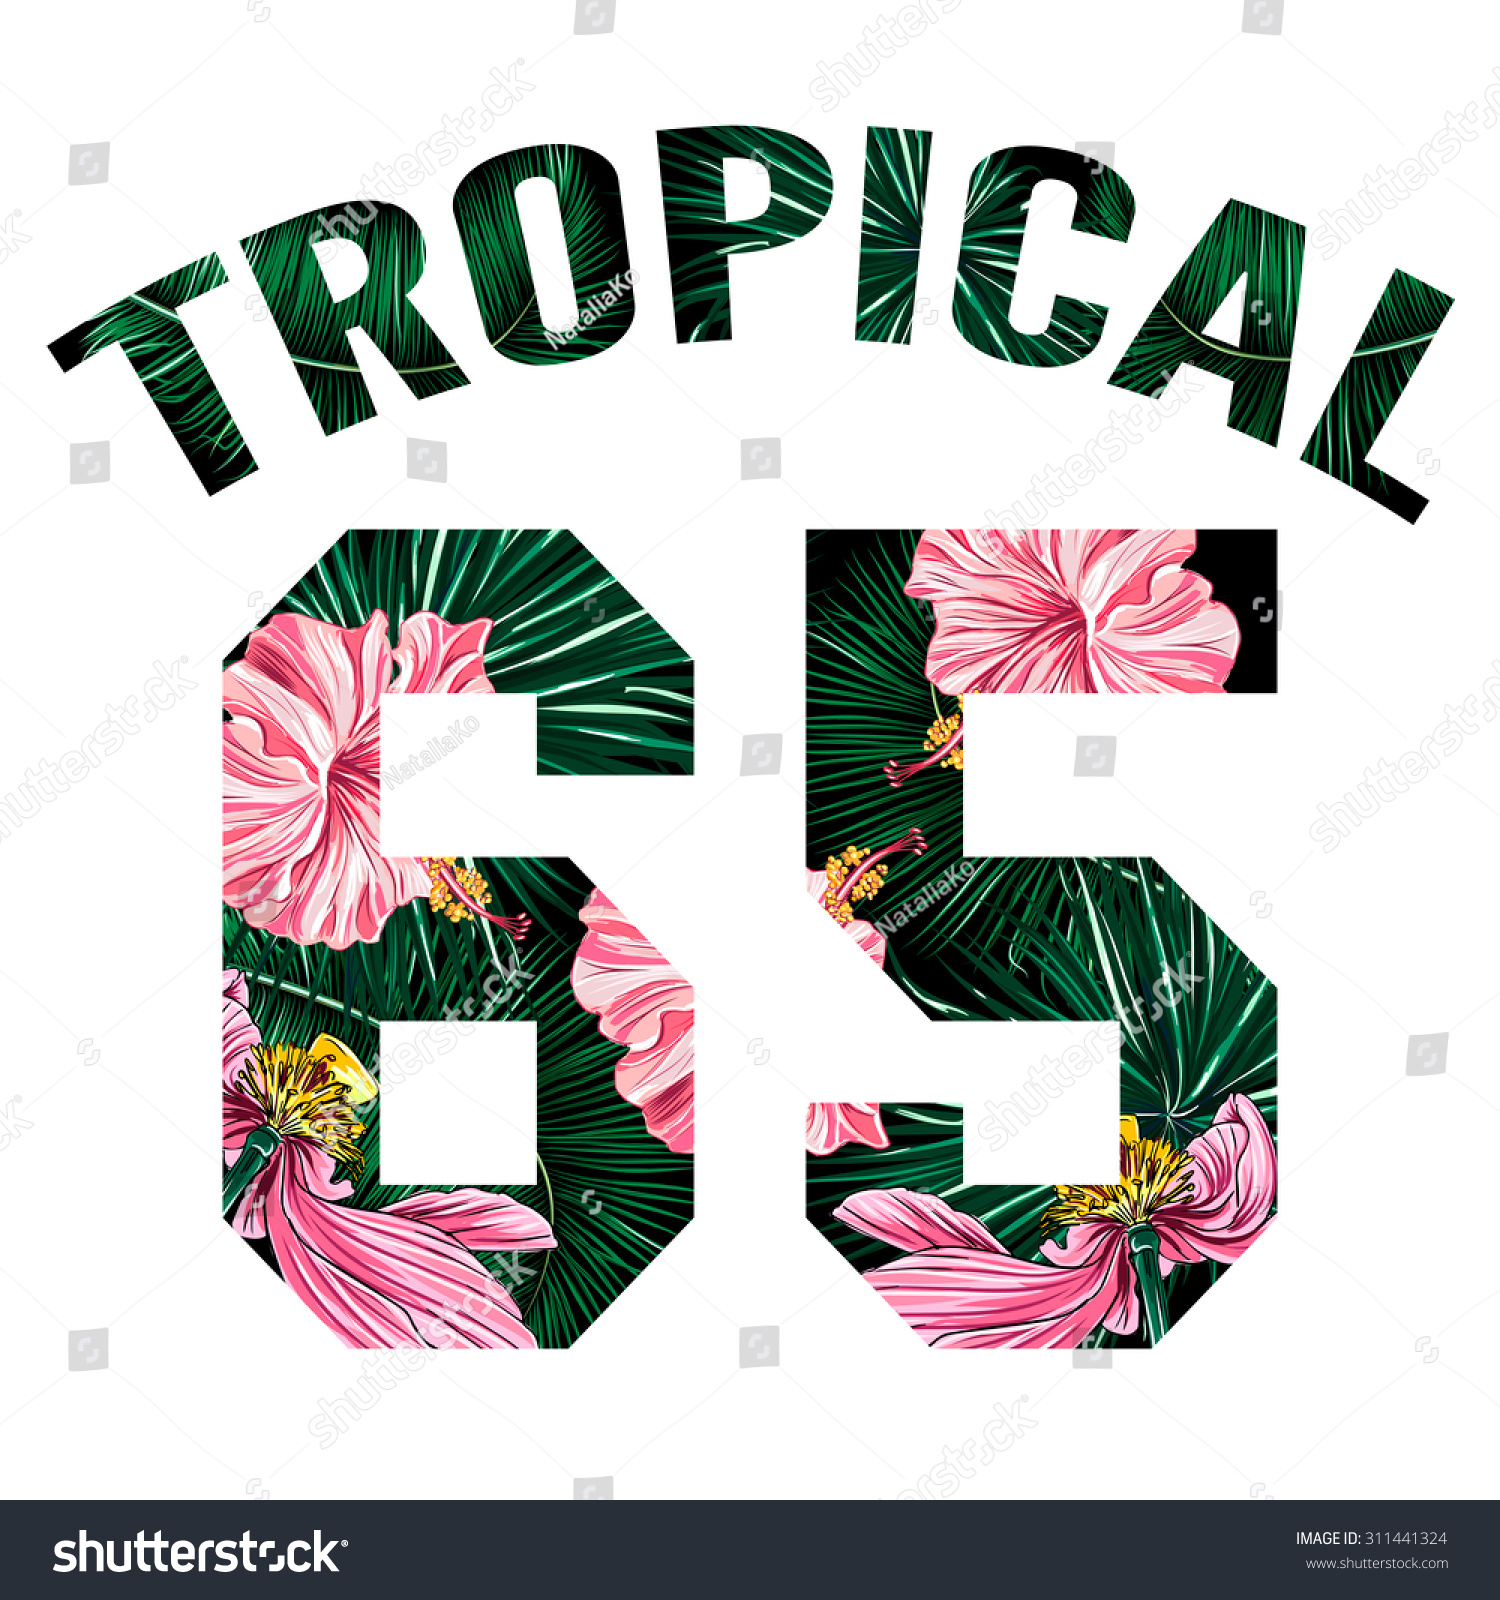 Design t shirt girl - Vector Fashion Design Tropic Print For Girl Summer T Shirt Tropical Flowers Palm Leaves